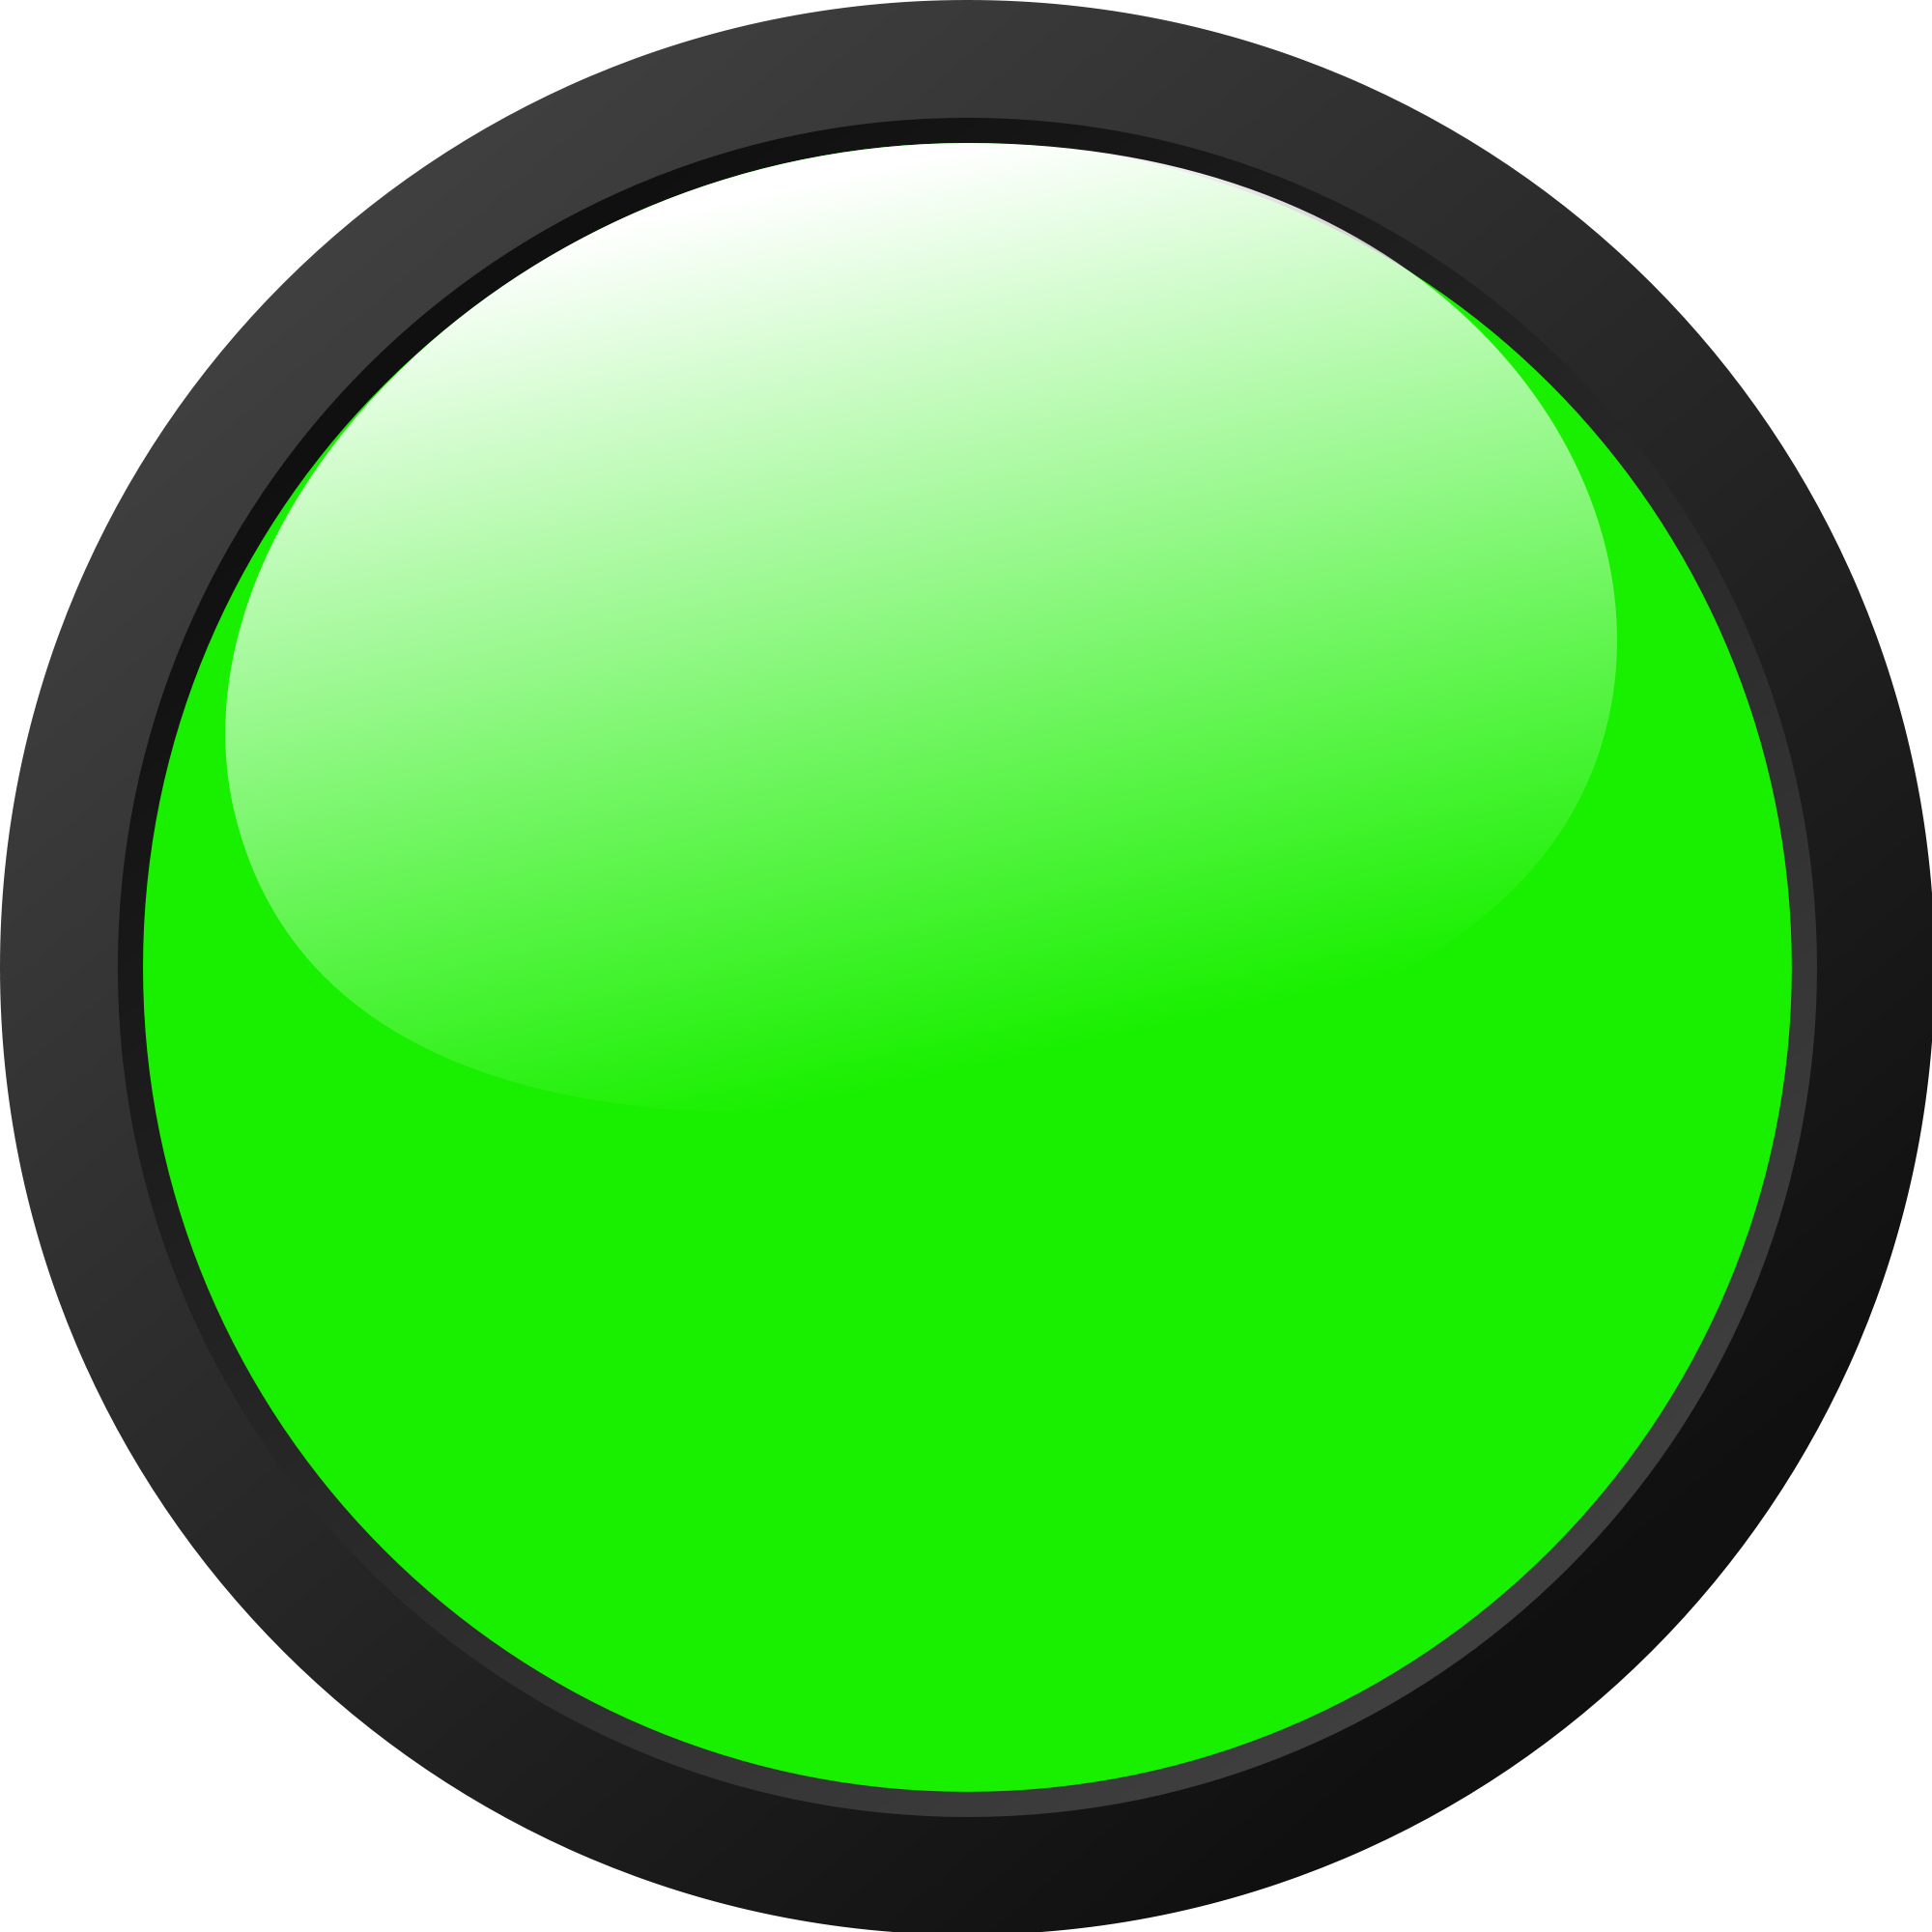 graphic freeuse download Yes clipart green light. File icon svg wikimedia